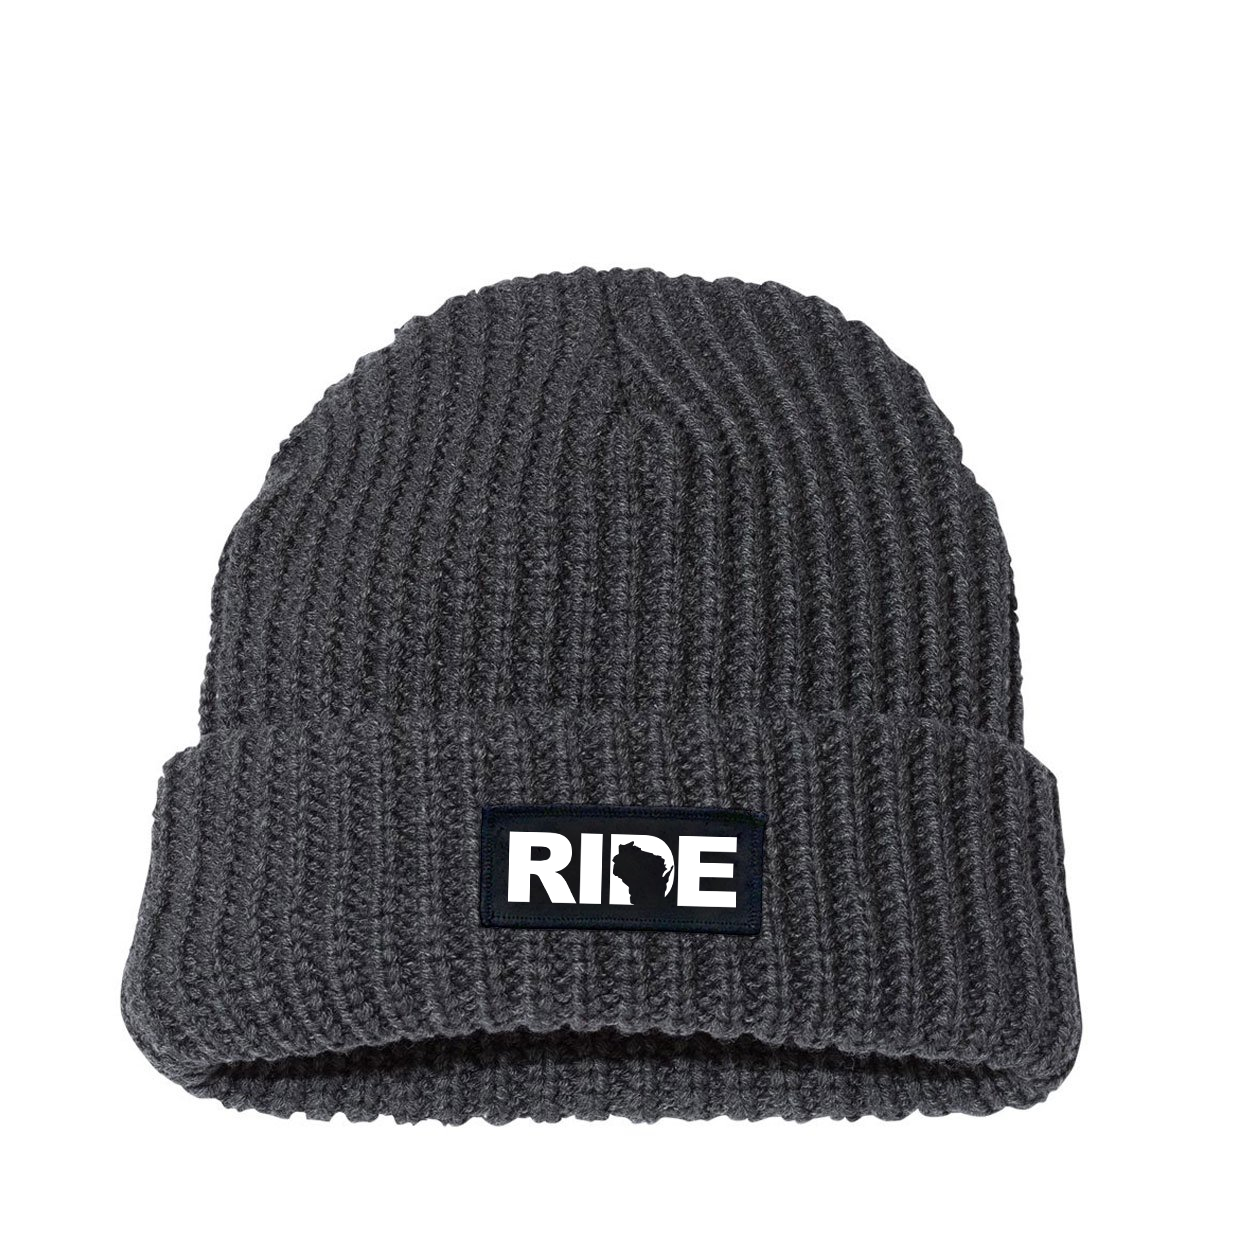 Ride Wisconsin Night Out Woven Patch Roll Up Jumbo Chunky Knit Beanie Charcoal (White Logo)